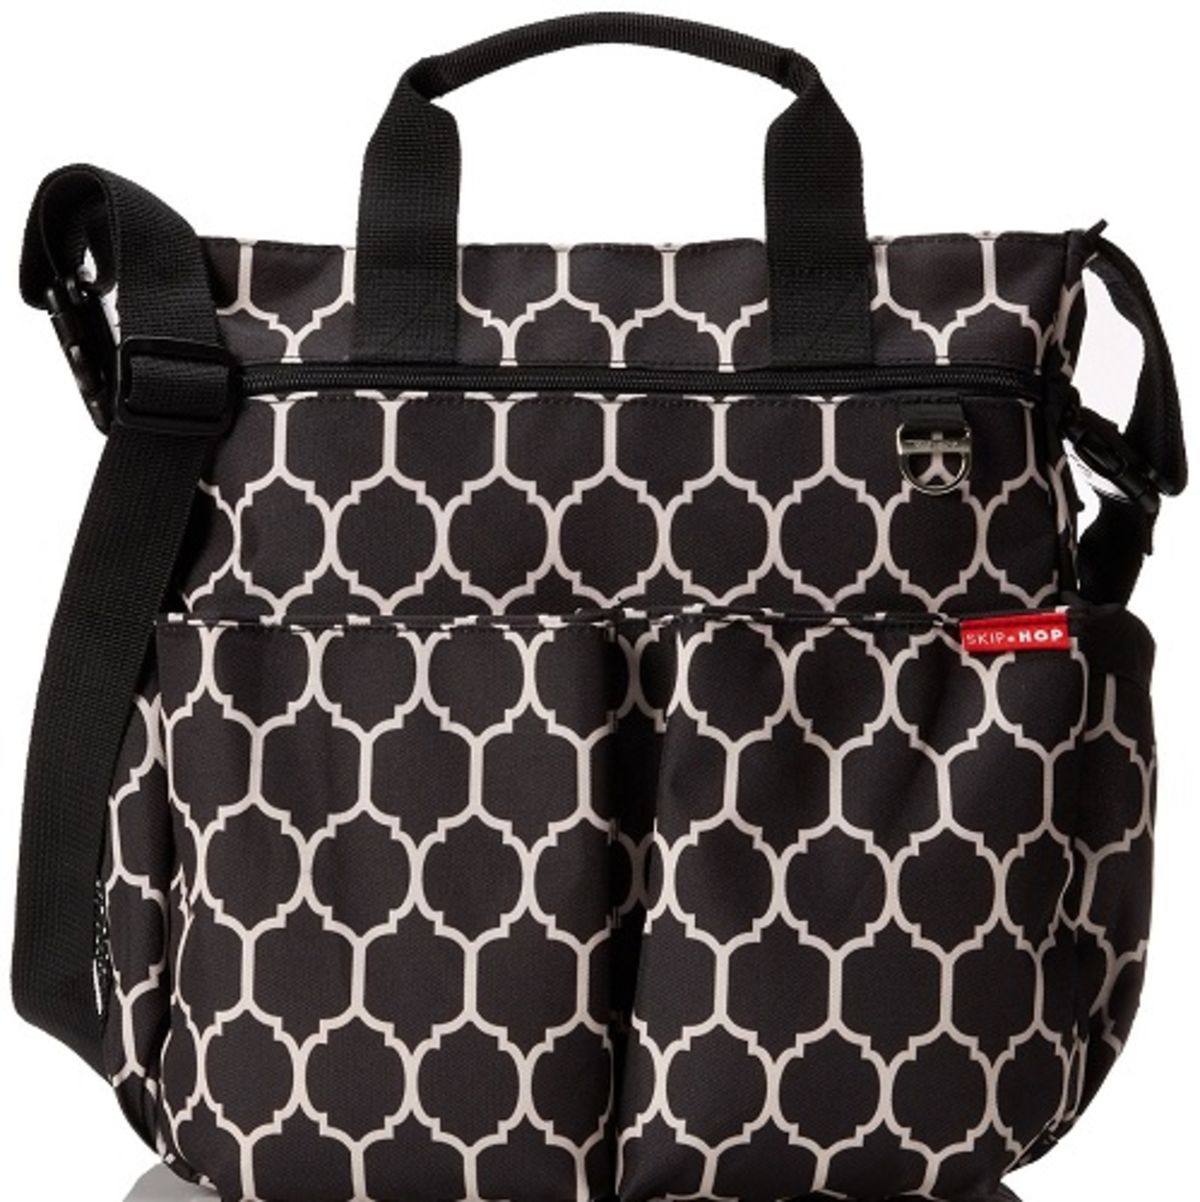 Headline for Top 10 Stylish Diaper Bags for Mom 2017